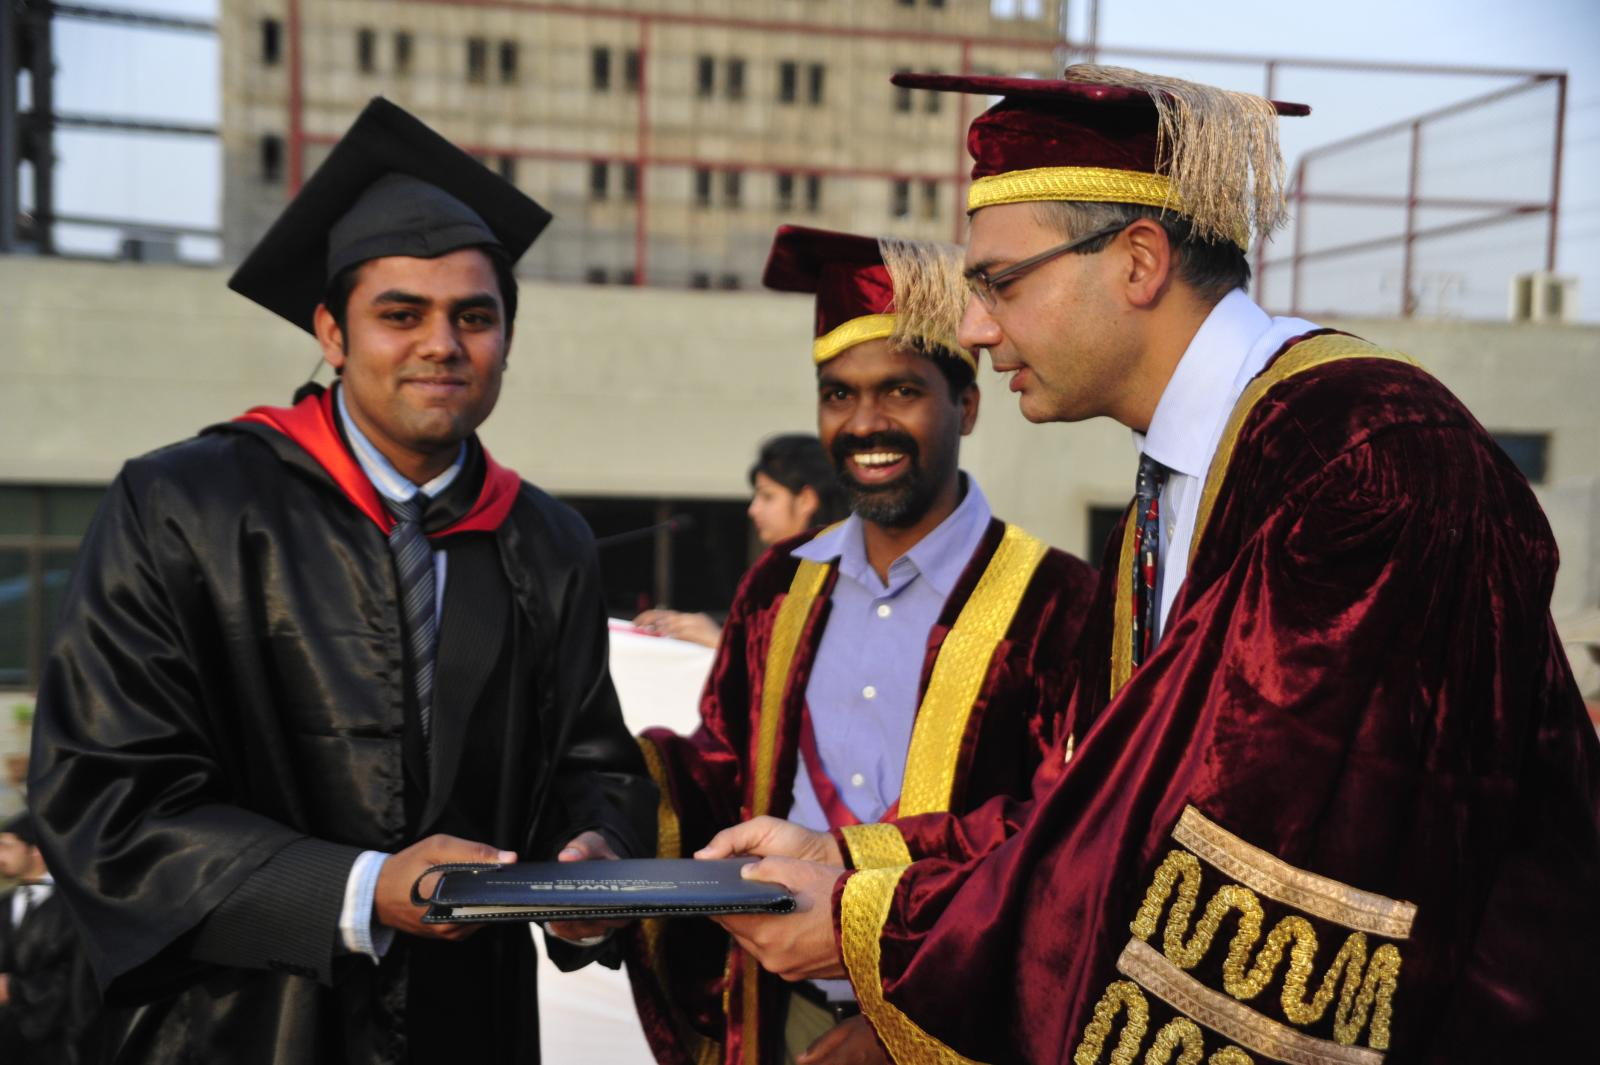 Saurabh receiving the degree